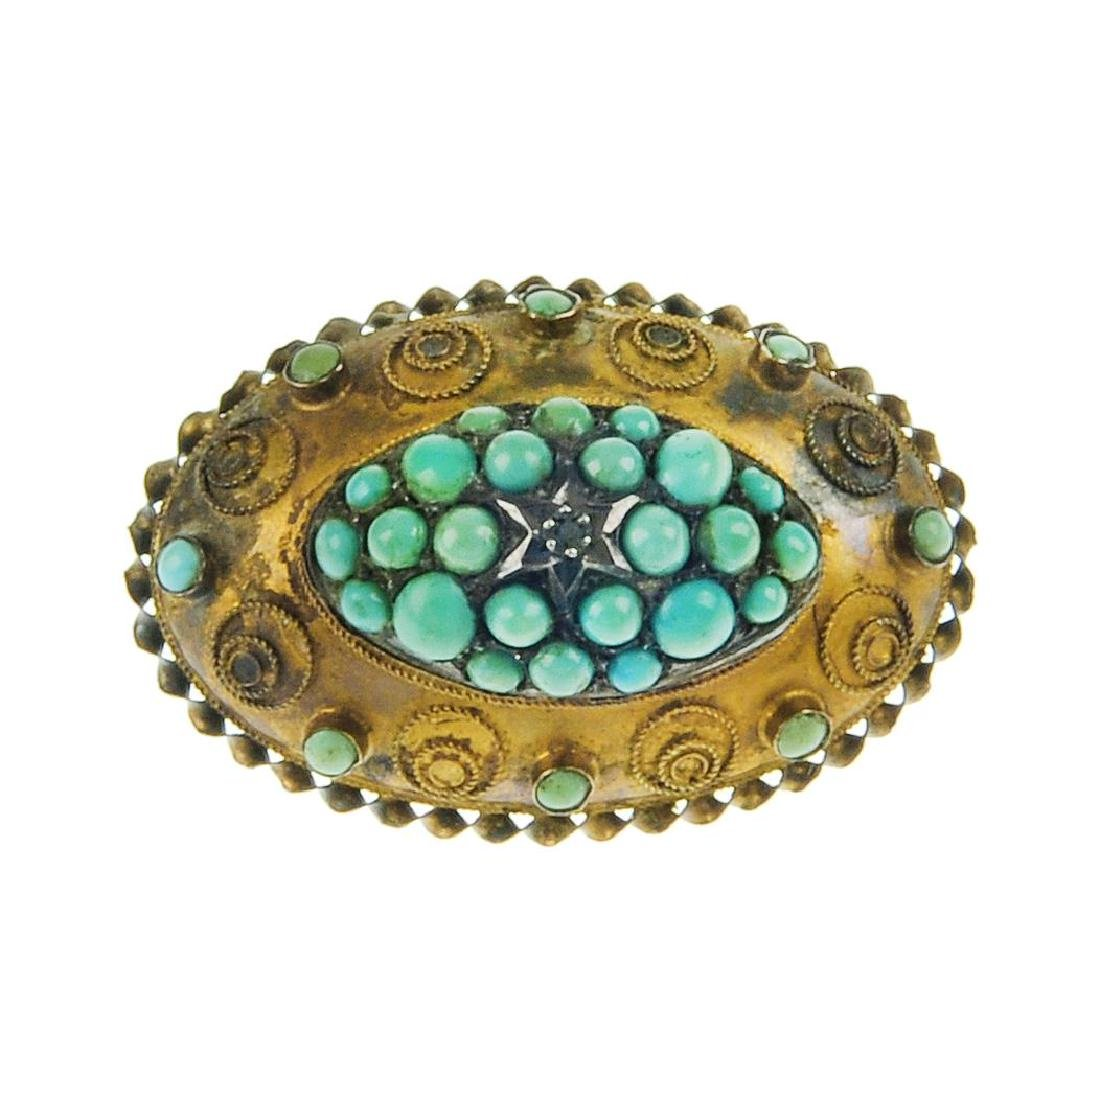 A late Victorian 15ct gold turquoise brooch. Of oval